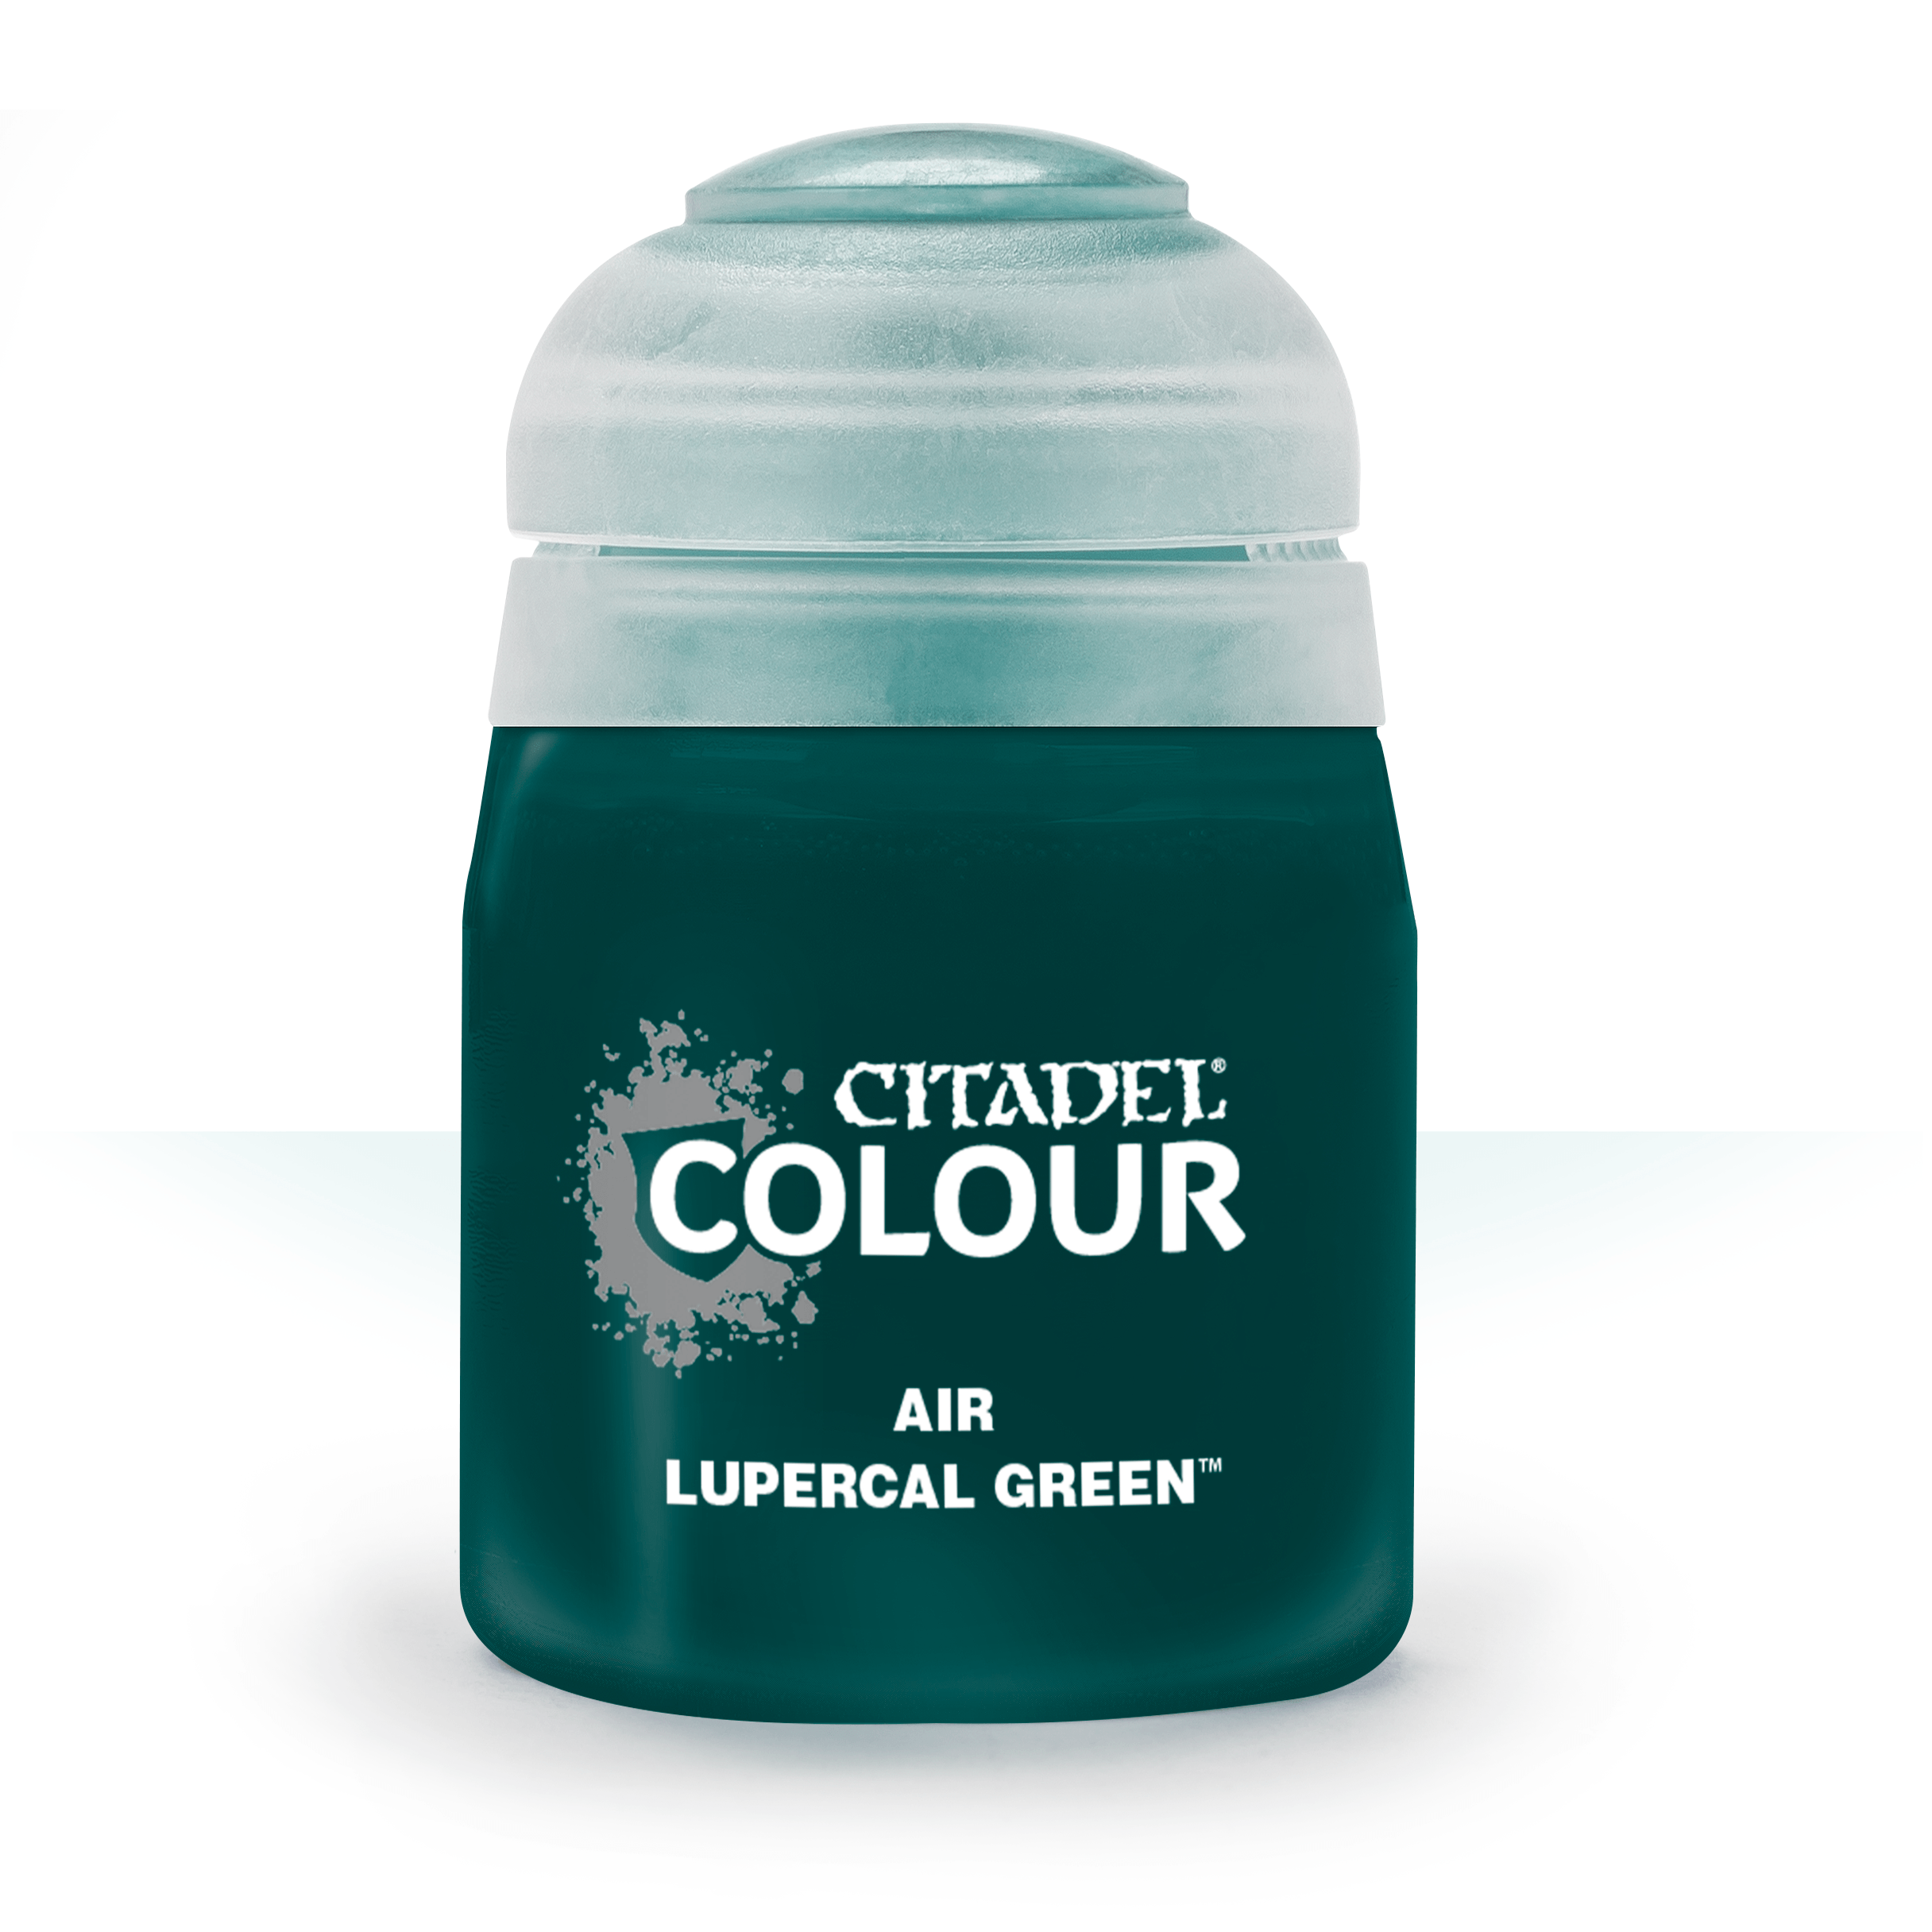 Citadel Airbrush Paints: Lupercal Green